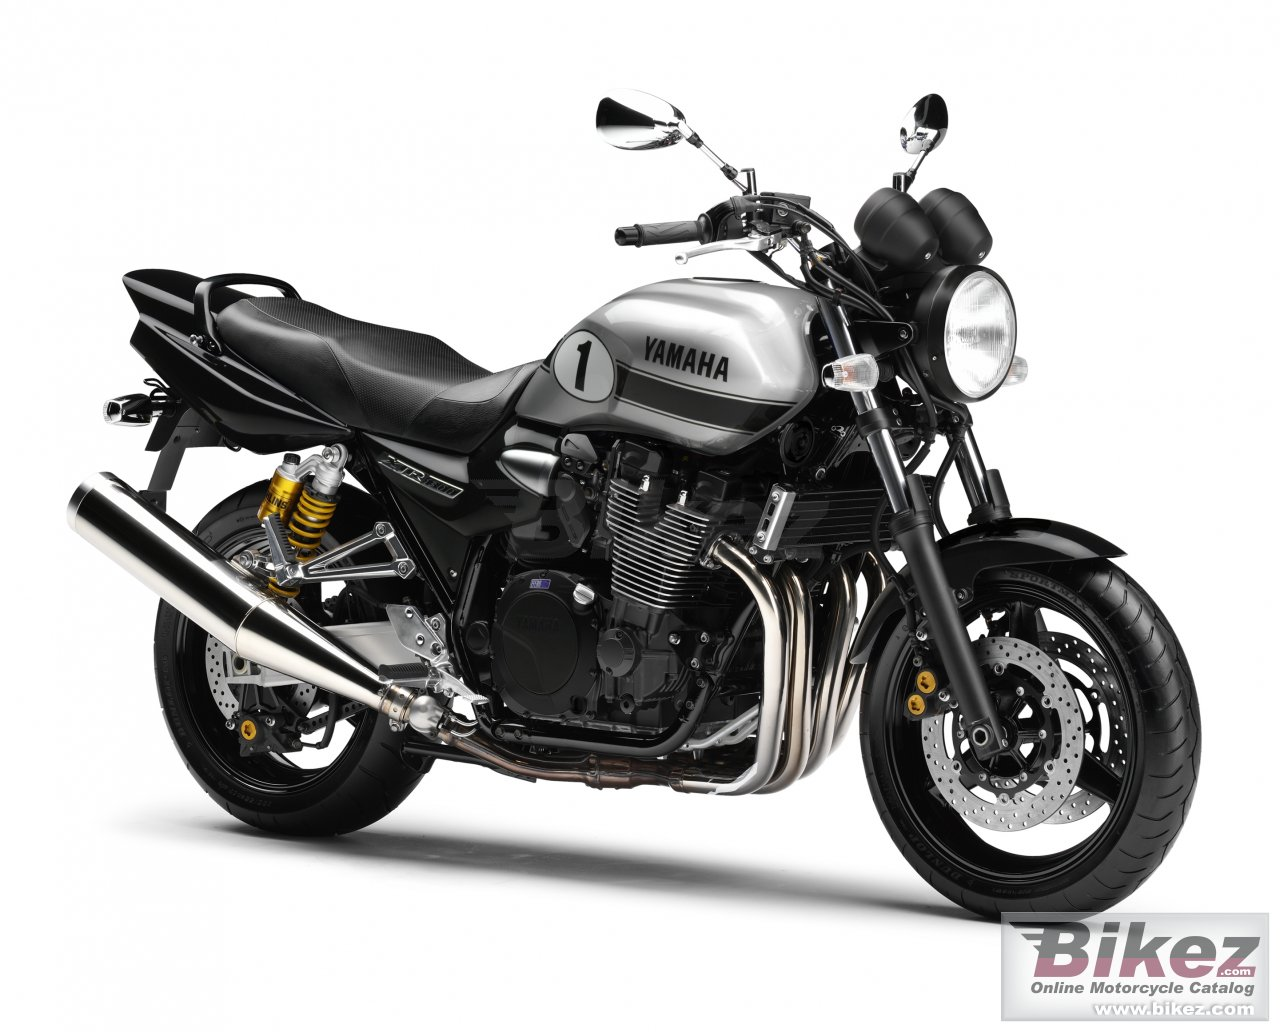 Big Yamaha xjr1300 picture and wallpaper from Bikez.com